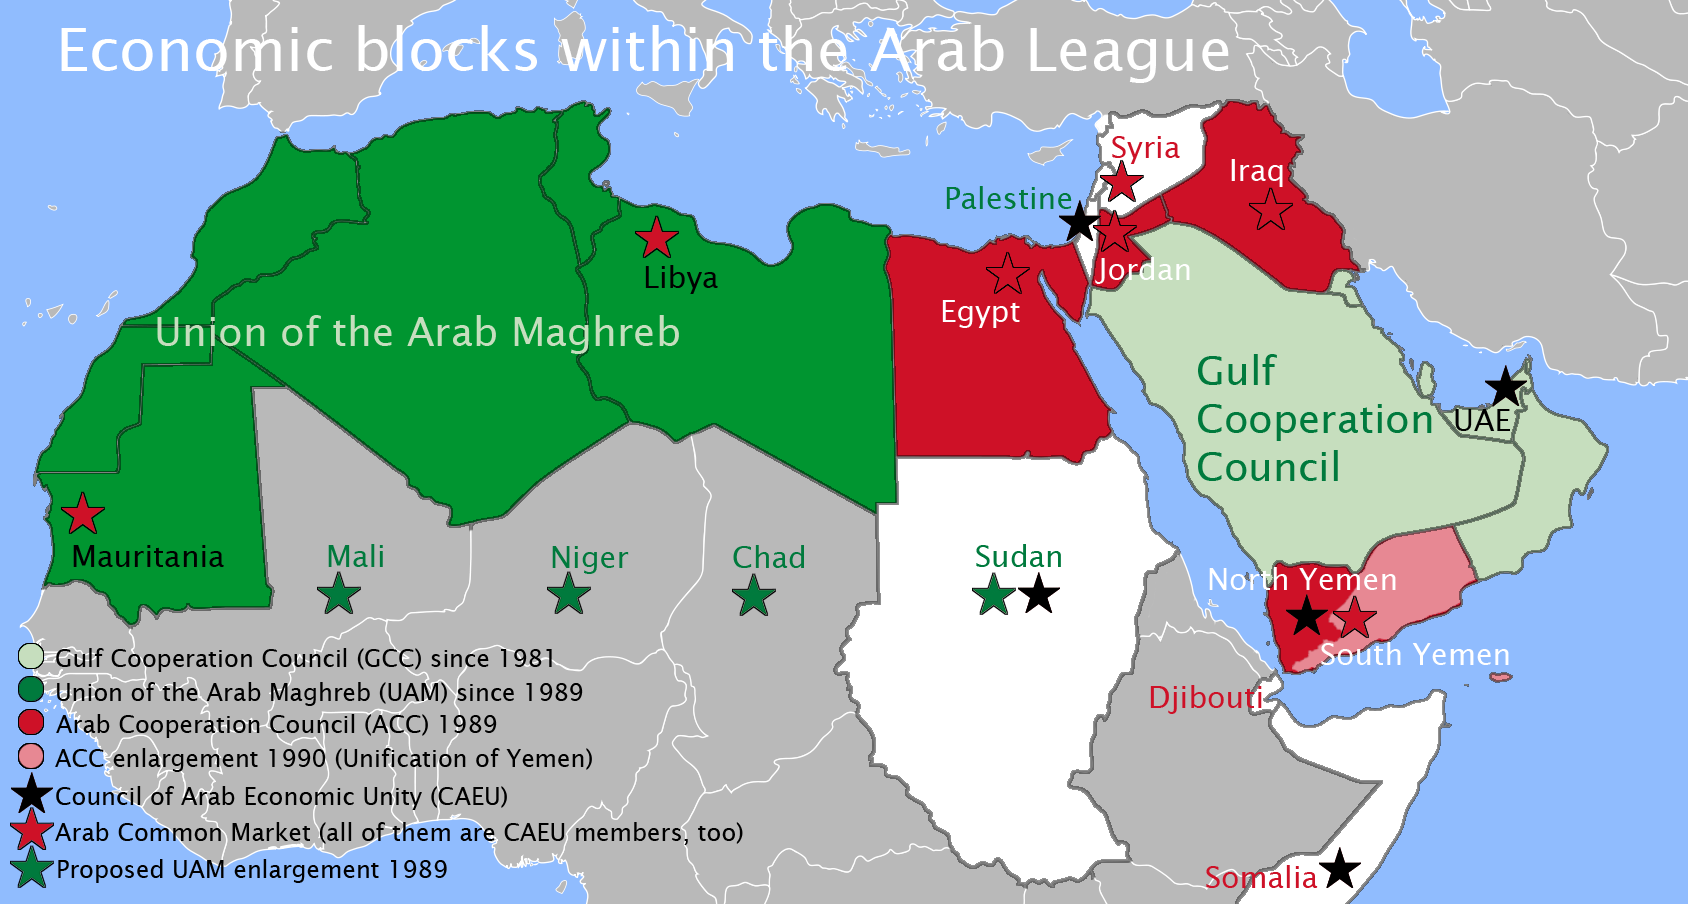 File:Arab Cooperation Council png - Wikimedia Commons